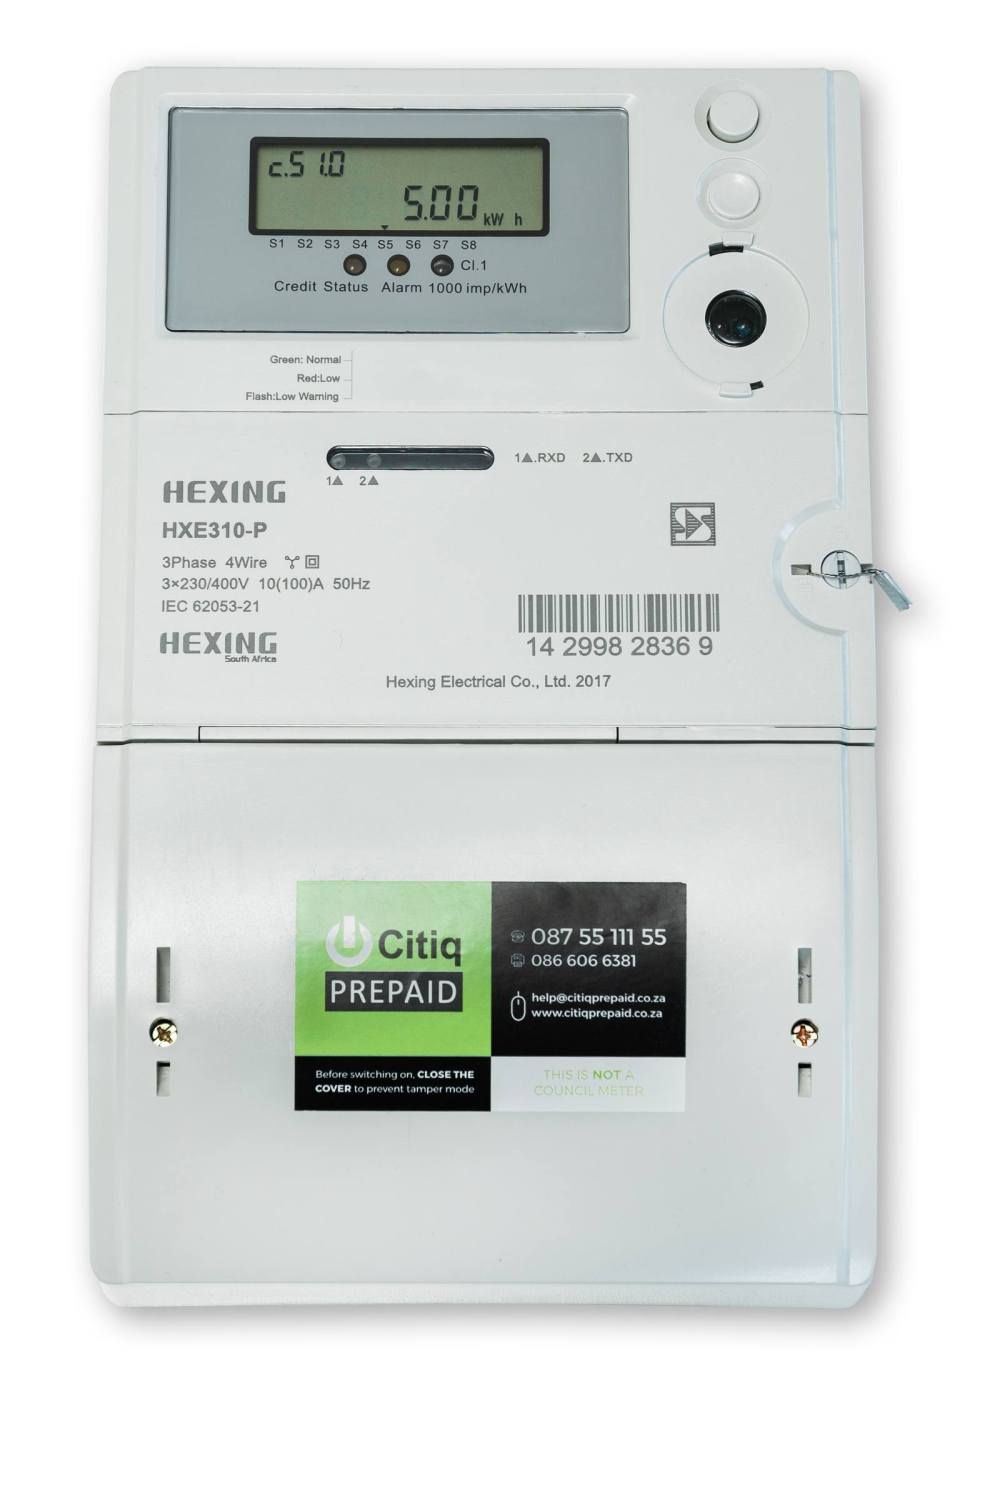 medium resolution of hexing three phase plc hxe 310 p split electricity meter hxe310 p is a three phase direct connection